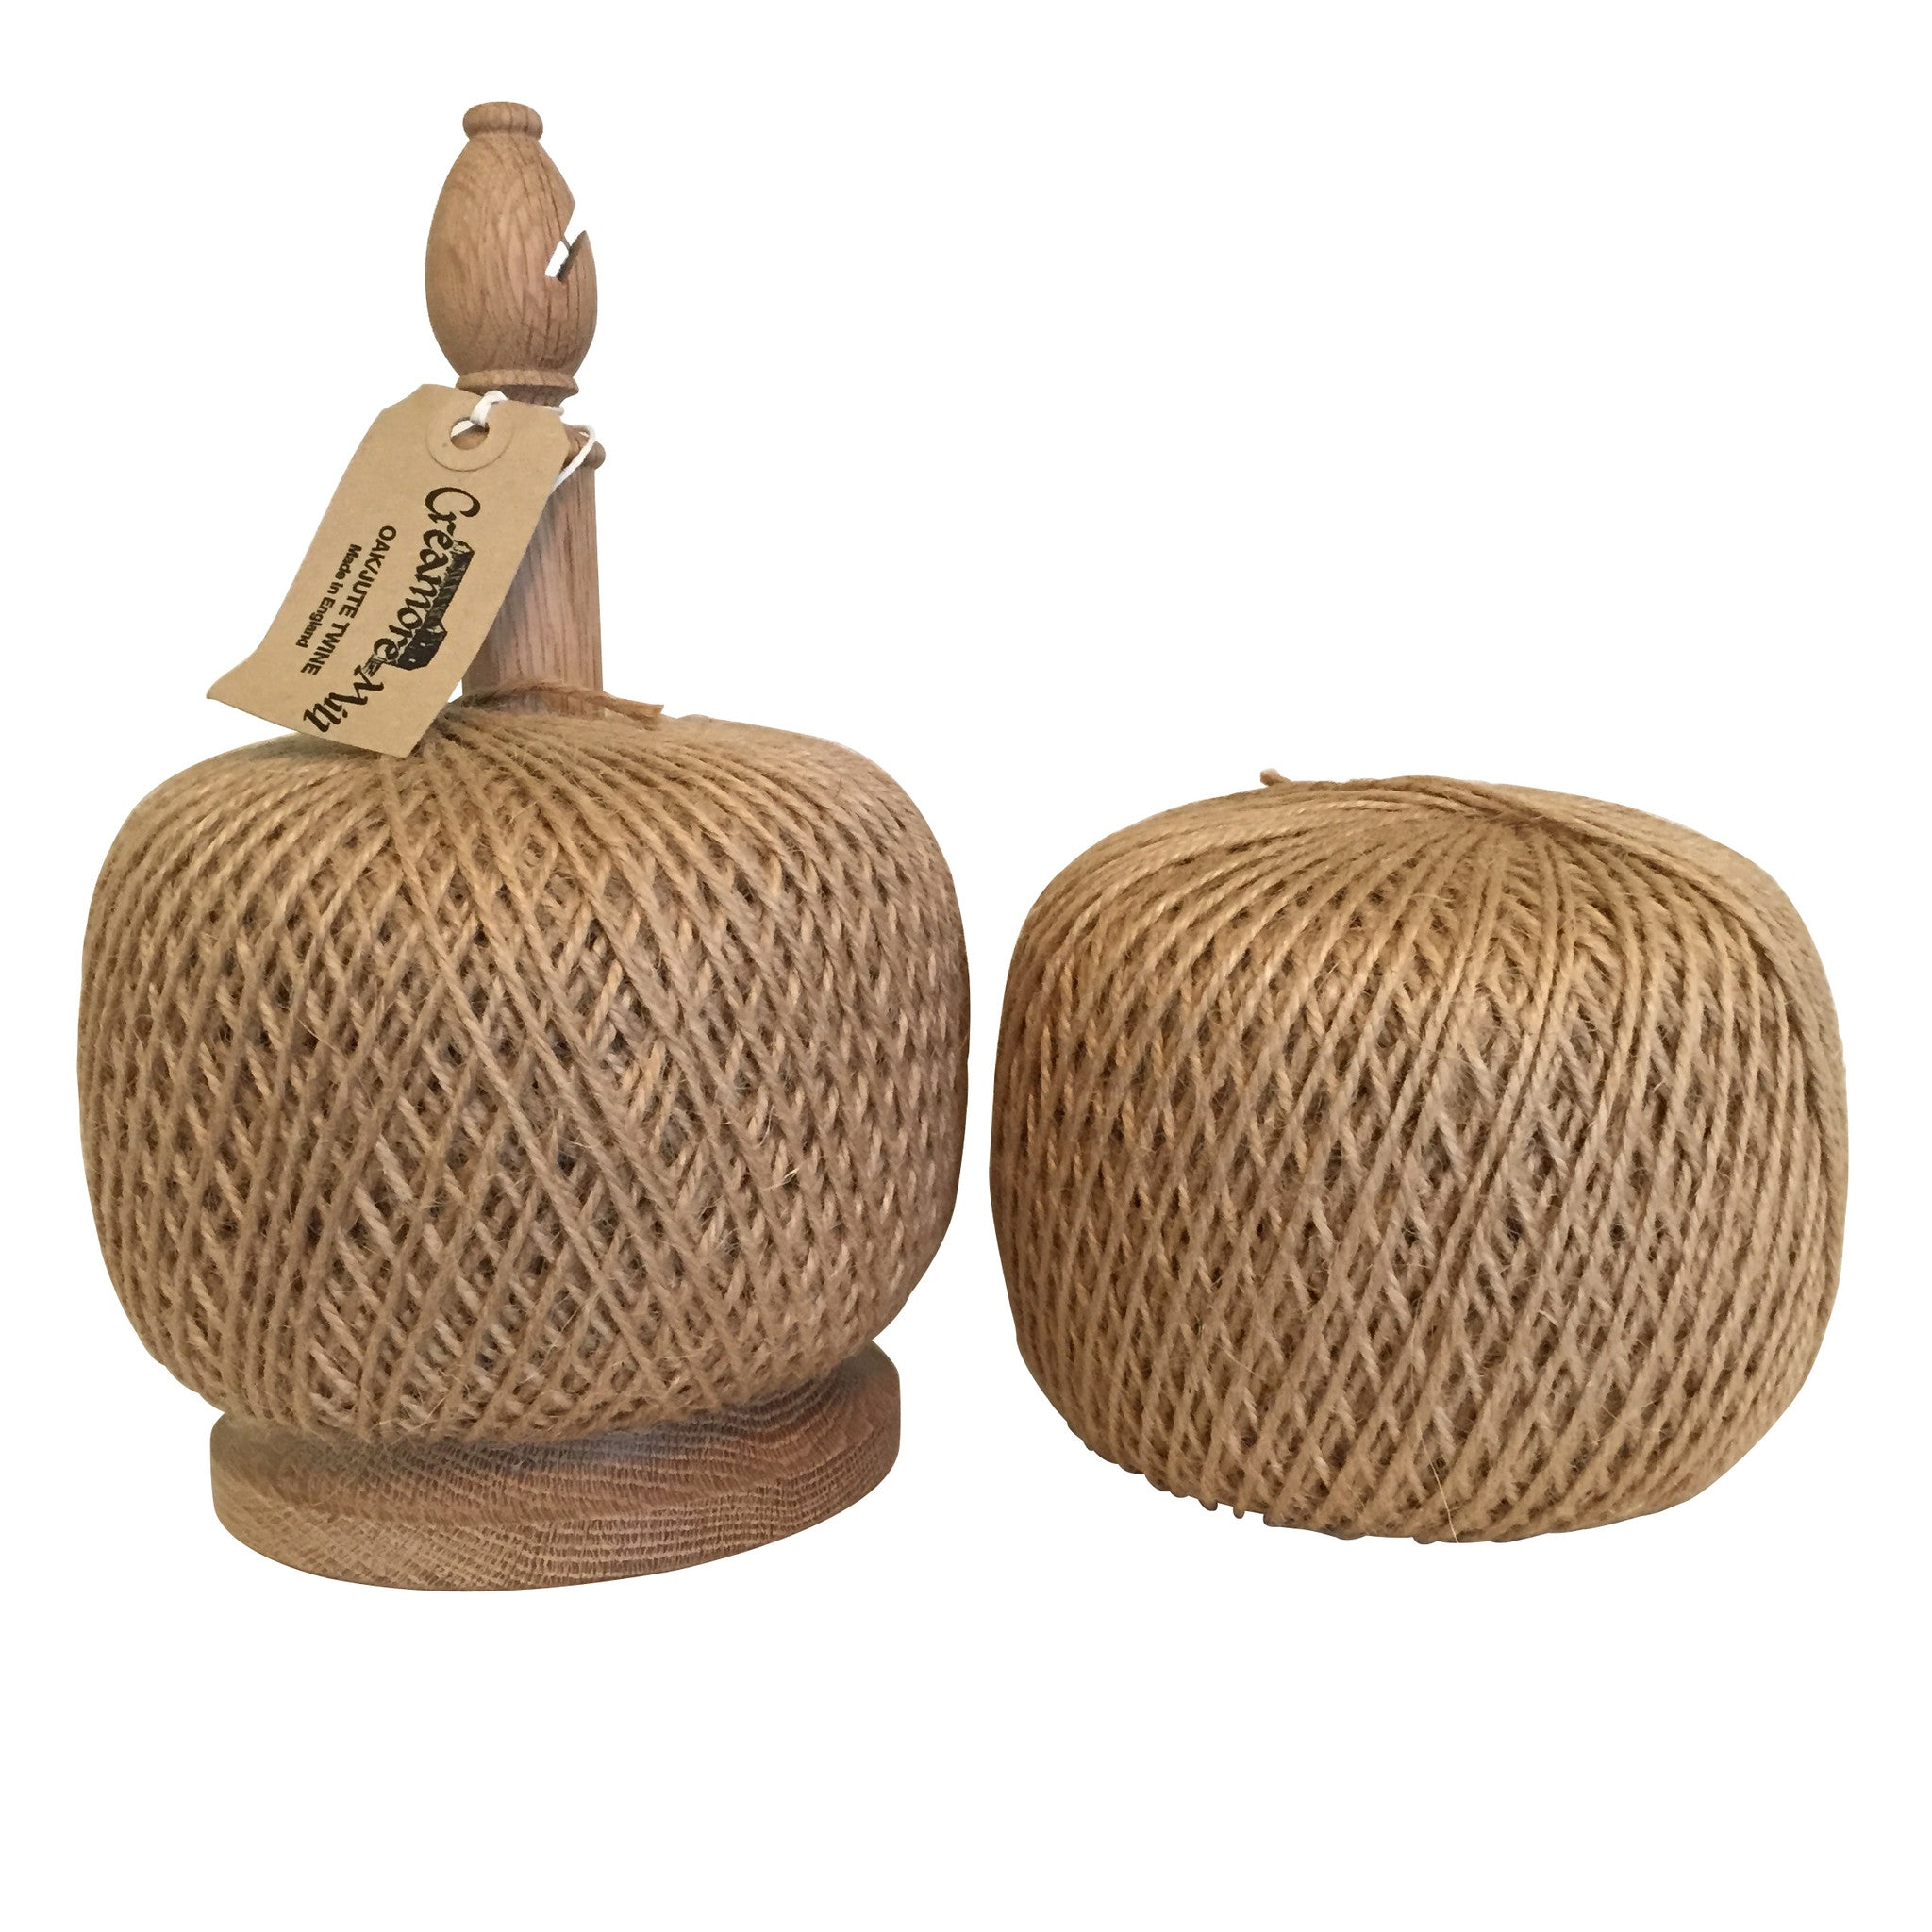 Twine Ball 500g - The Potting Shed Garden Tools